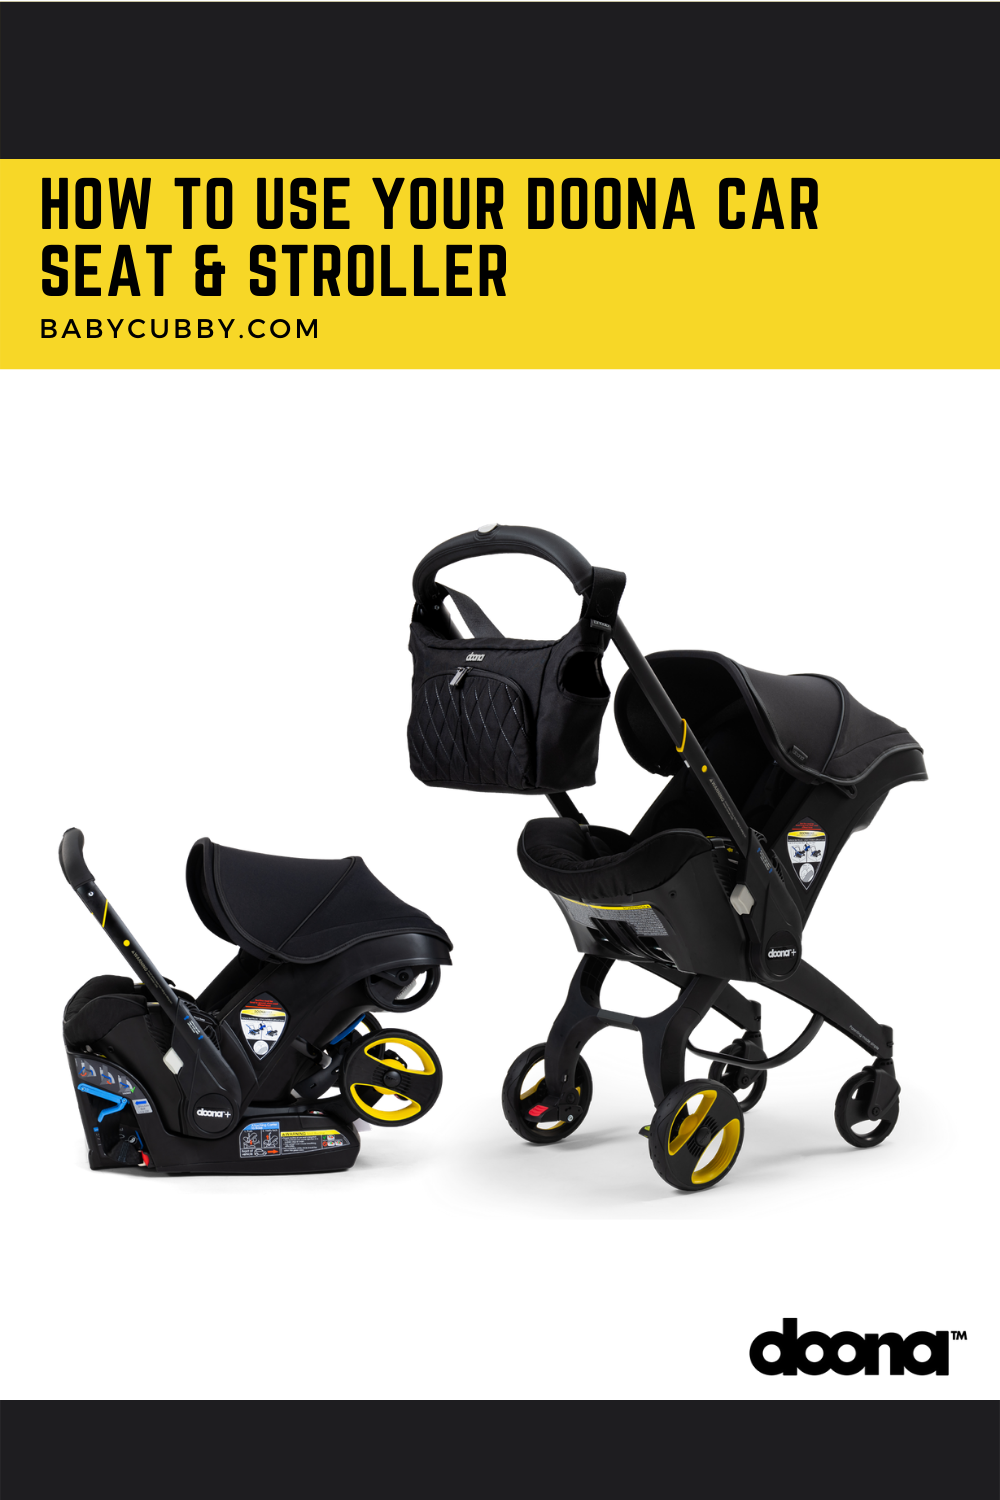 How to Use your Doona Infant Car Seat and Stroller The